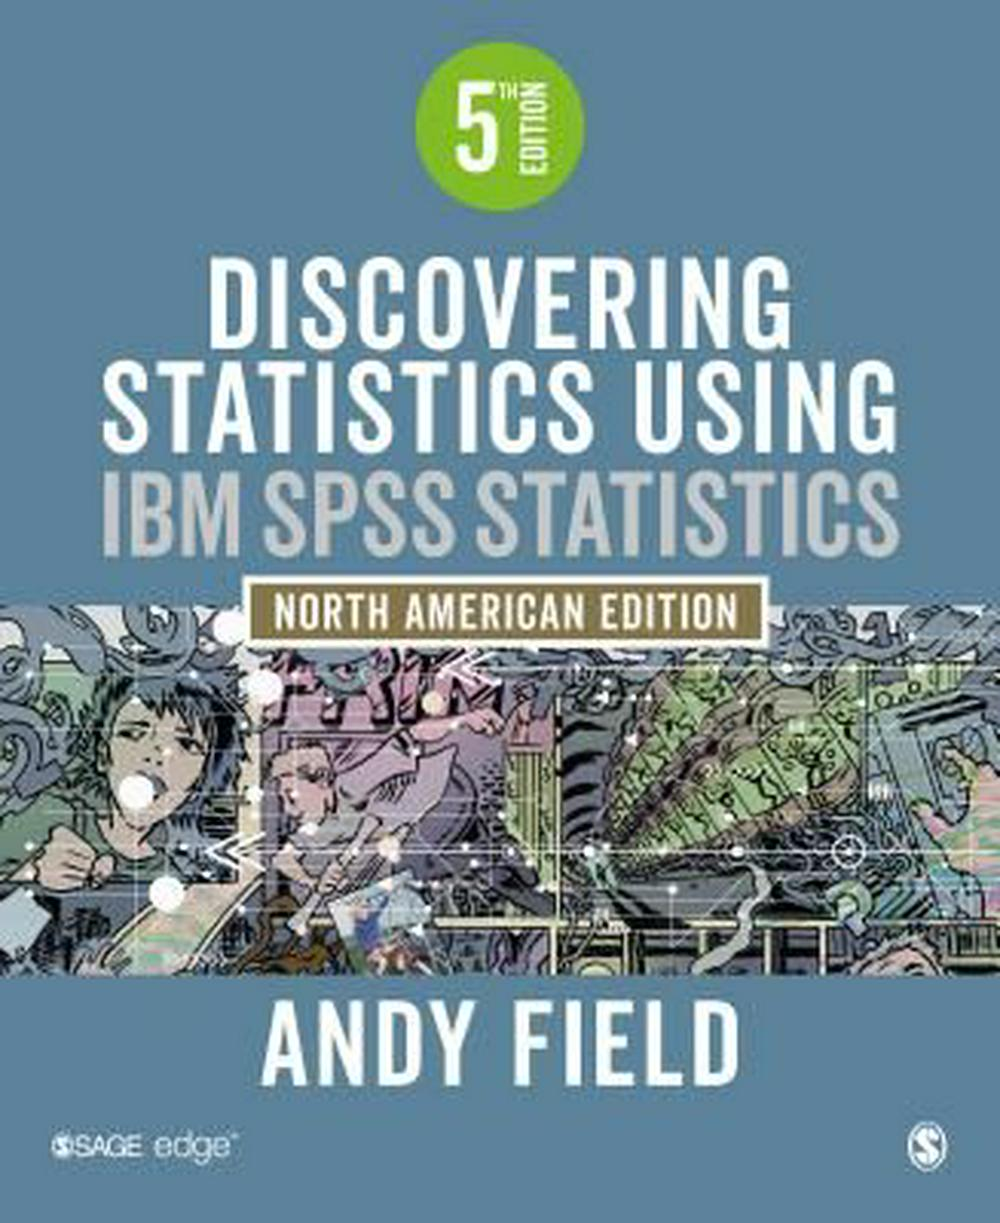 andy field discovering statistics Discovering statistics using spss andy field 2009 first edition published 2000 second edition published 2005 apart from any fair dealing for the purposes of research or private study, or criticism or review, as permitted under the copyright, designs and patents act, 1988, this publication.